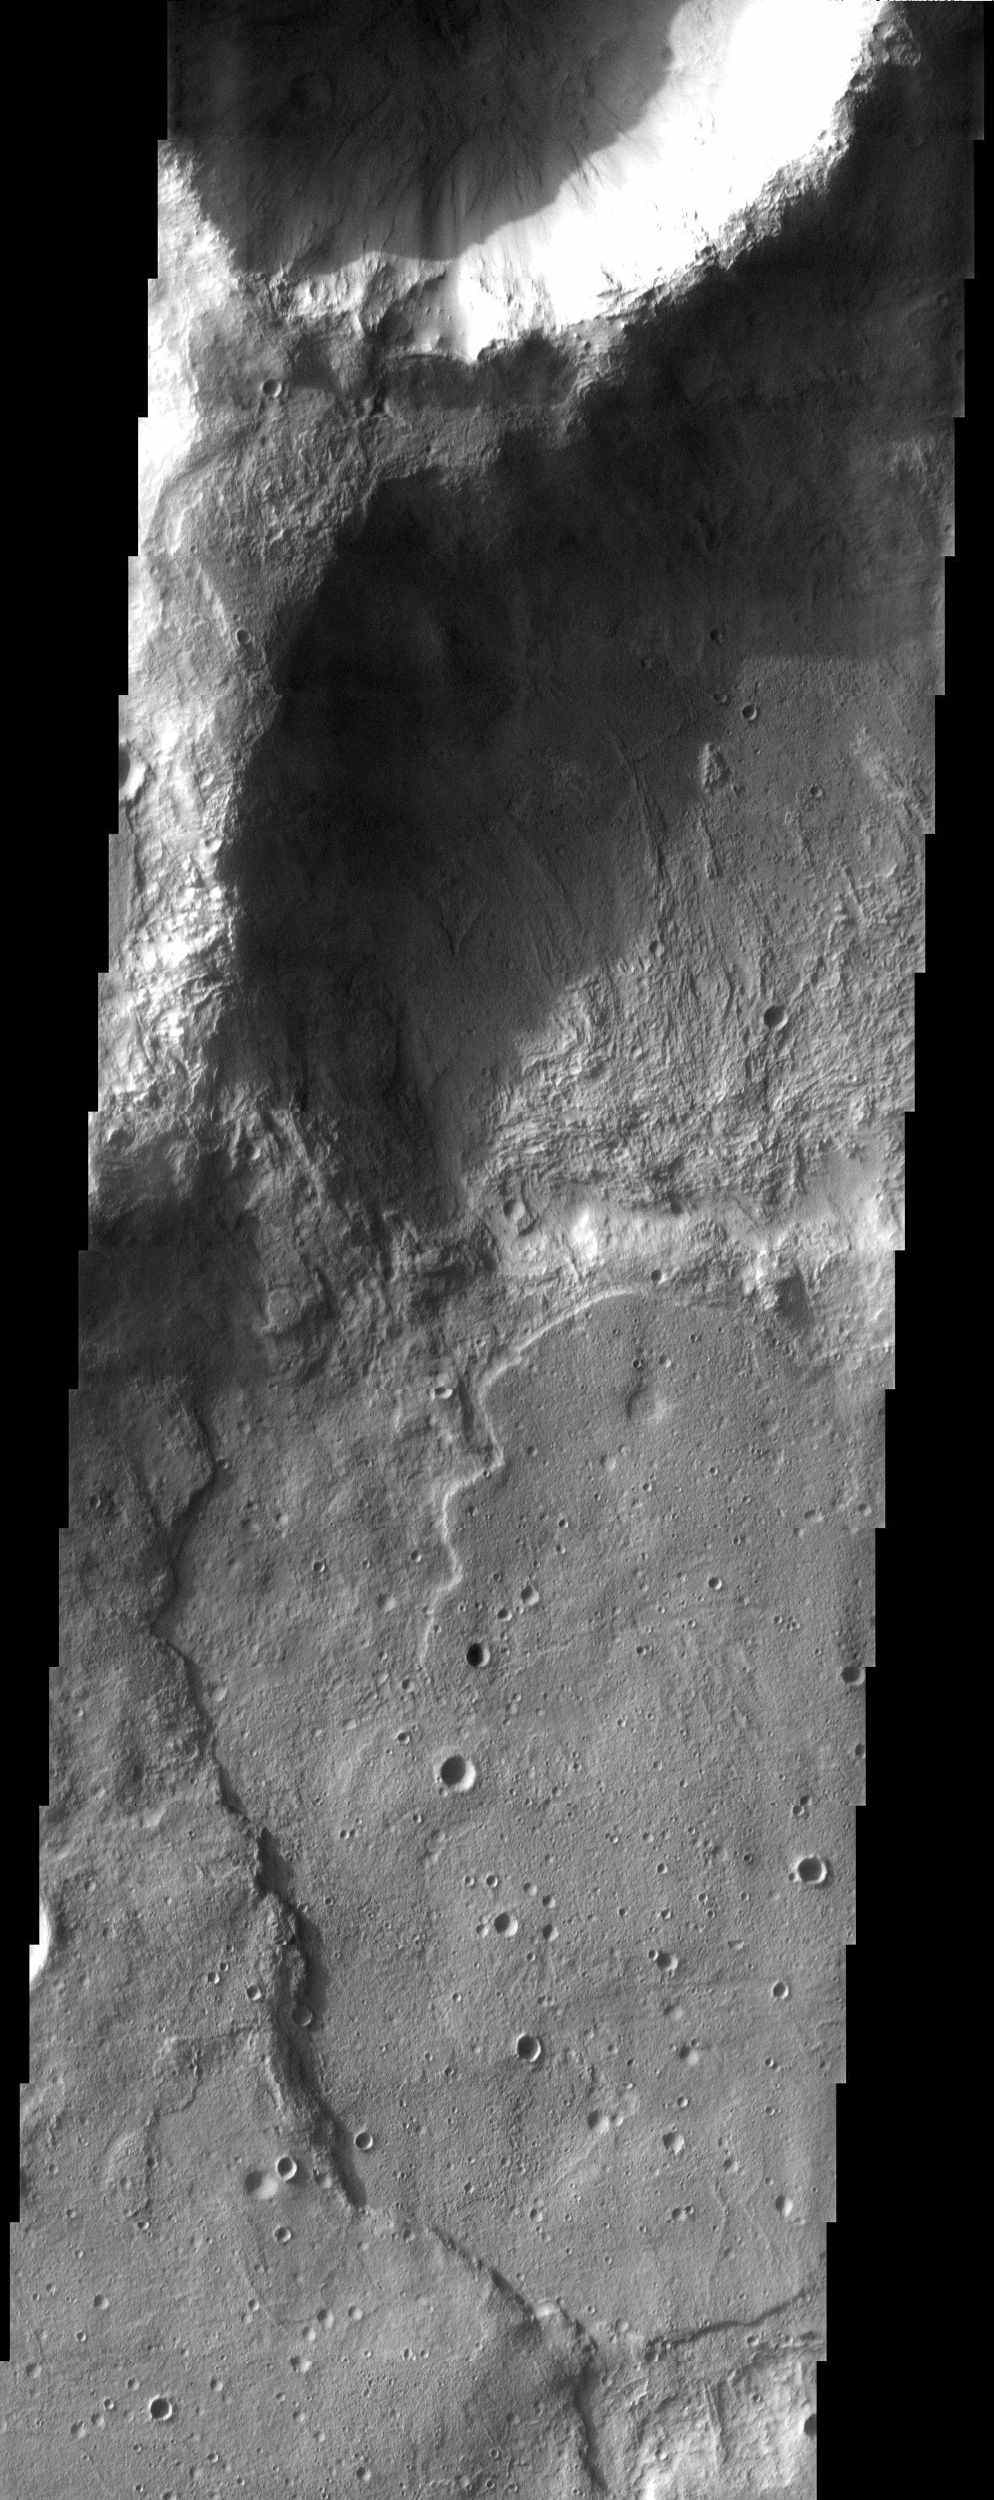 This pair of craters seen by NASA's Mars Odyssey just north of the Hellas Basin demonstrate the rugged topography that can result when an impact occurs on the rim of an existing crater.